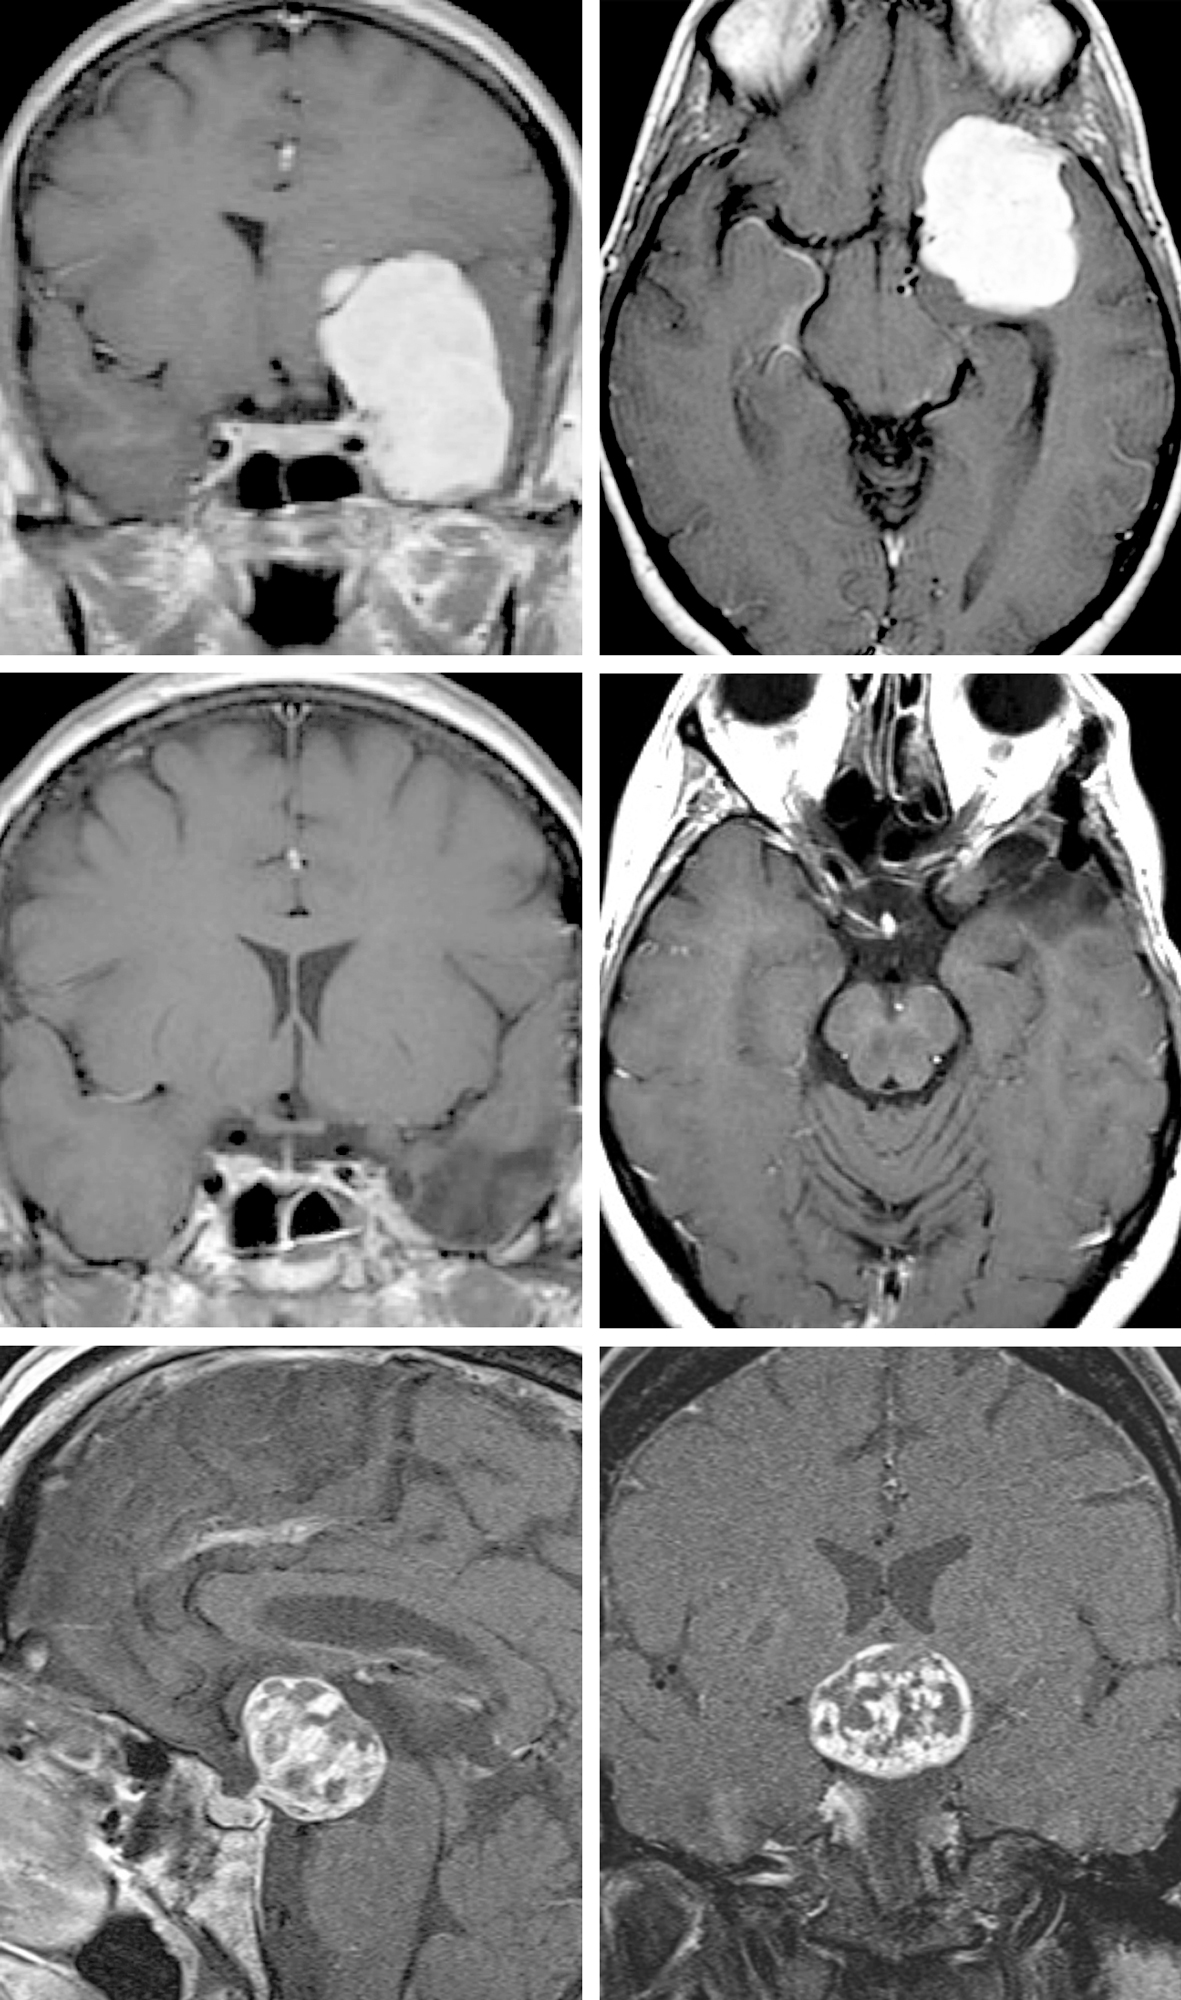 Figure 2: This large medial sphenoid wing meningioma (top photos) was resected via the modified OZ (middle photos). The significant superior extension of the tumor required a steep inferior-to-superior intradural operative trajectory afforded through the orbital trim osteotomy. Similarly, this third ventricular craniopharyngioma (bottom images) was removed via the same approach through the lamina terminalis.